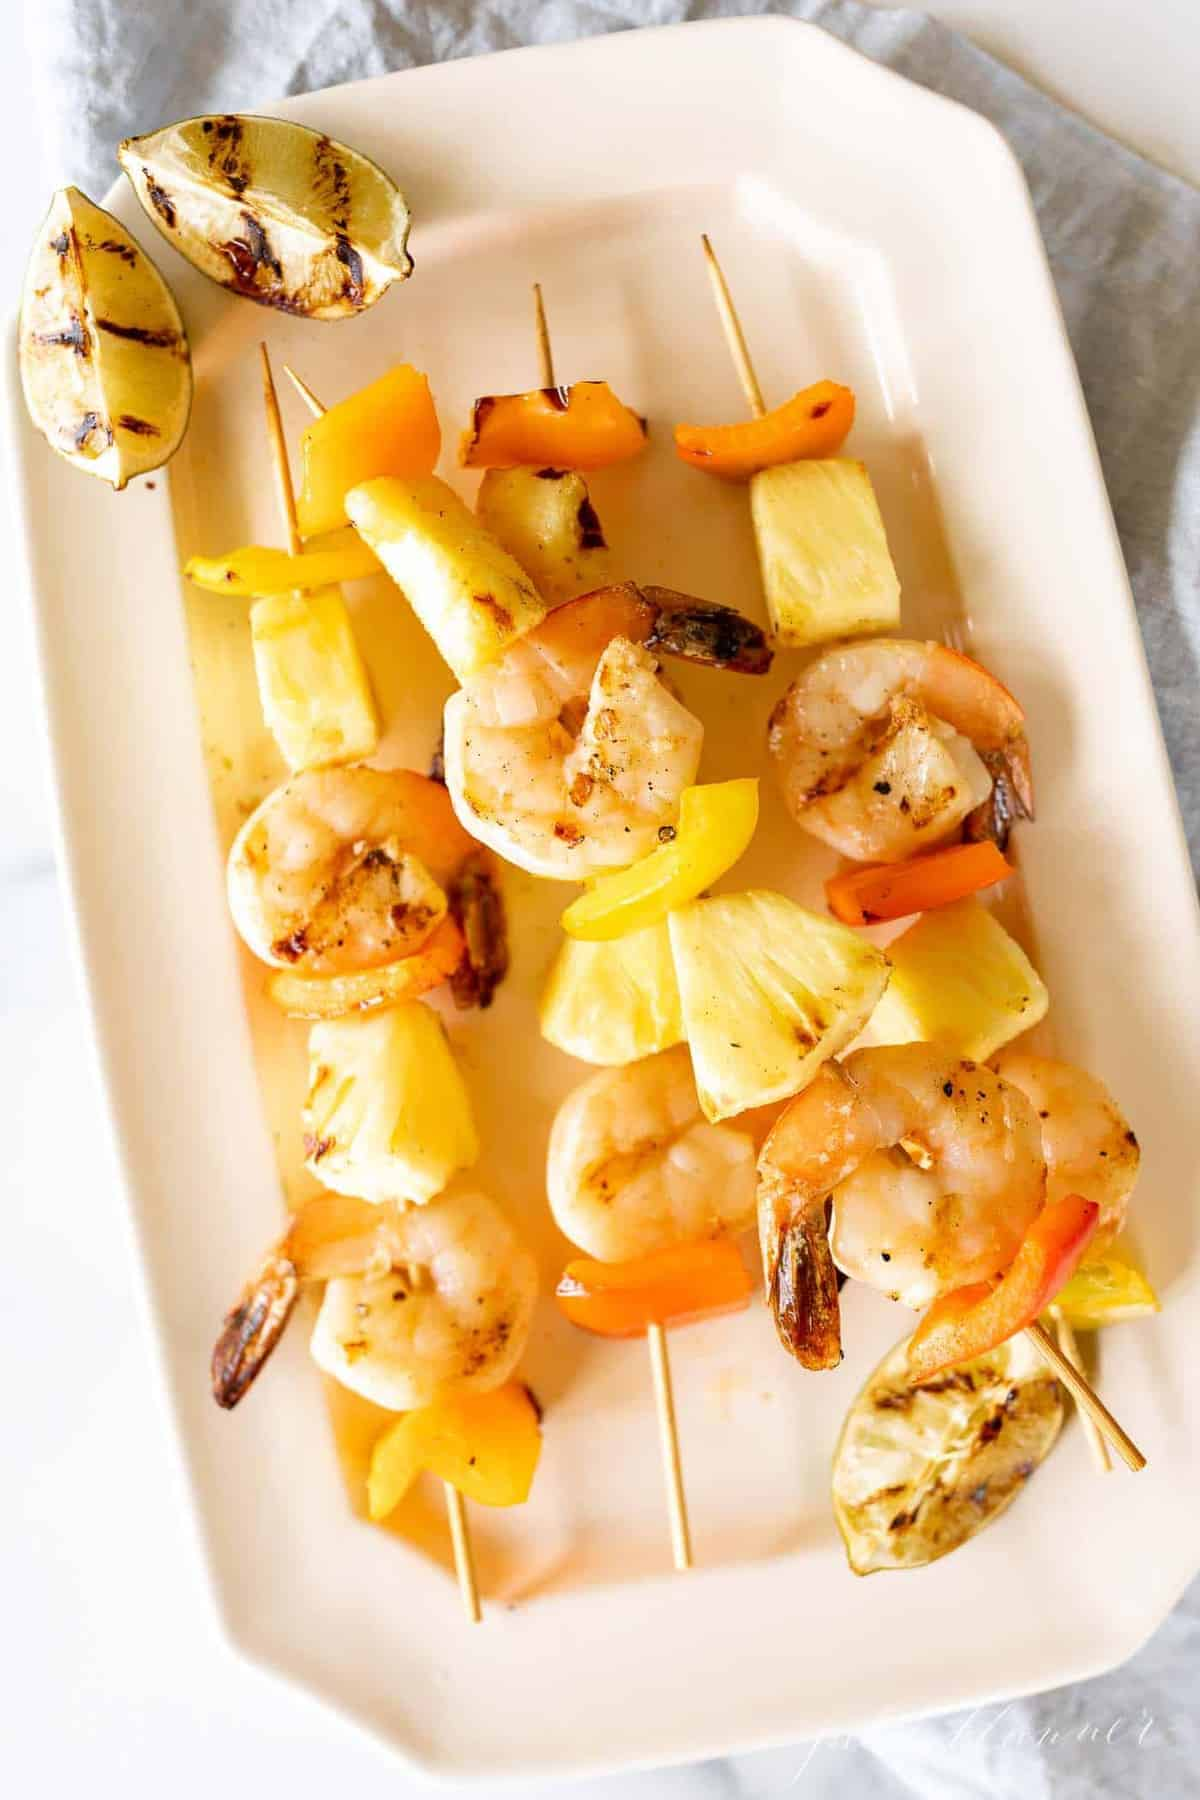 A white platter filled with shrimp kabobs for labor day menu planning.